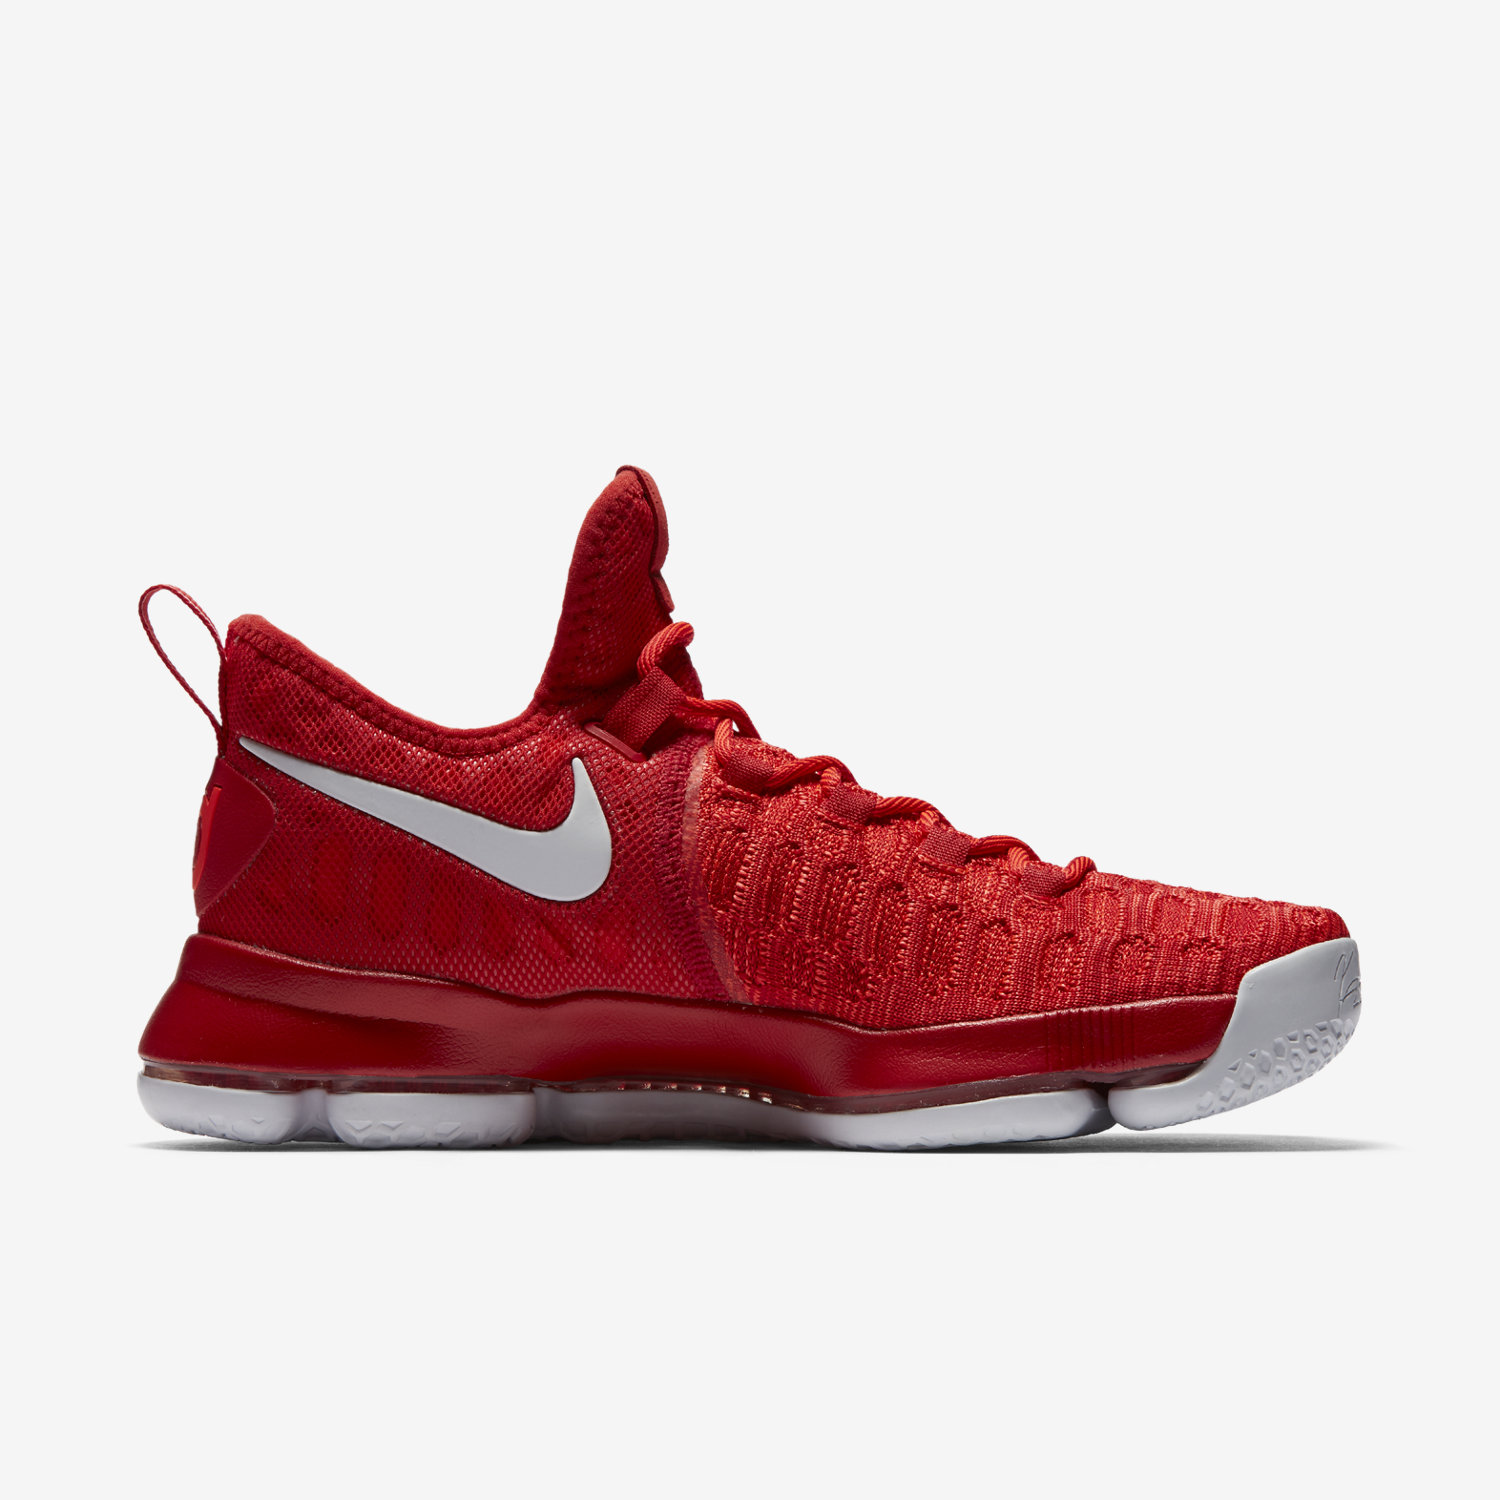 nike make your own shoes red and white kd 6